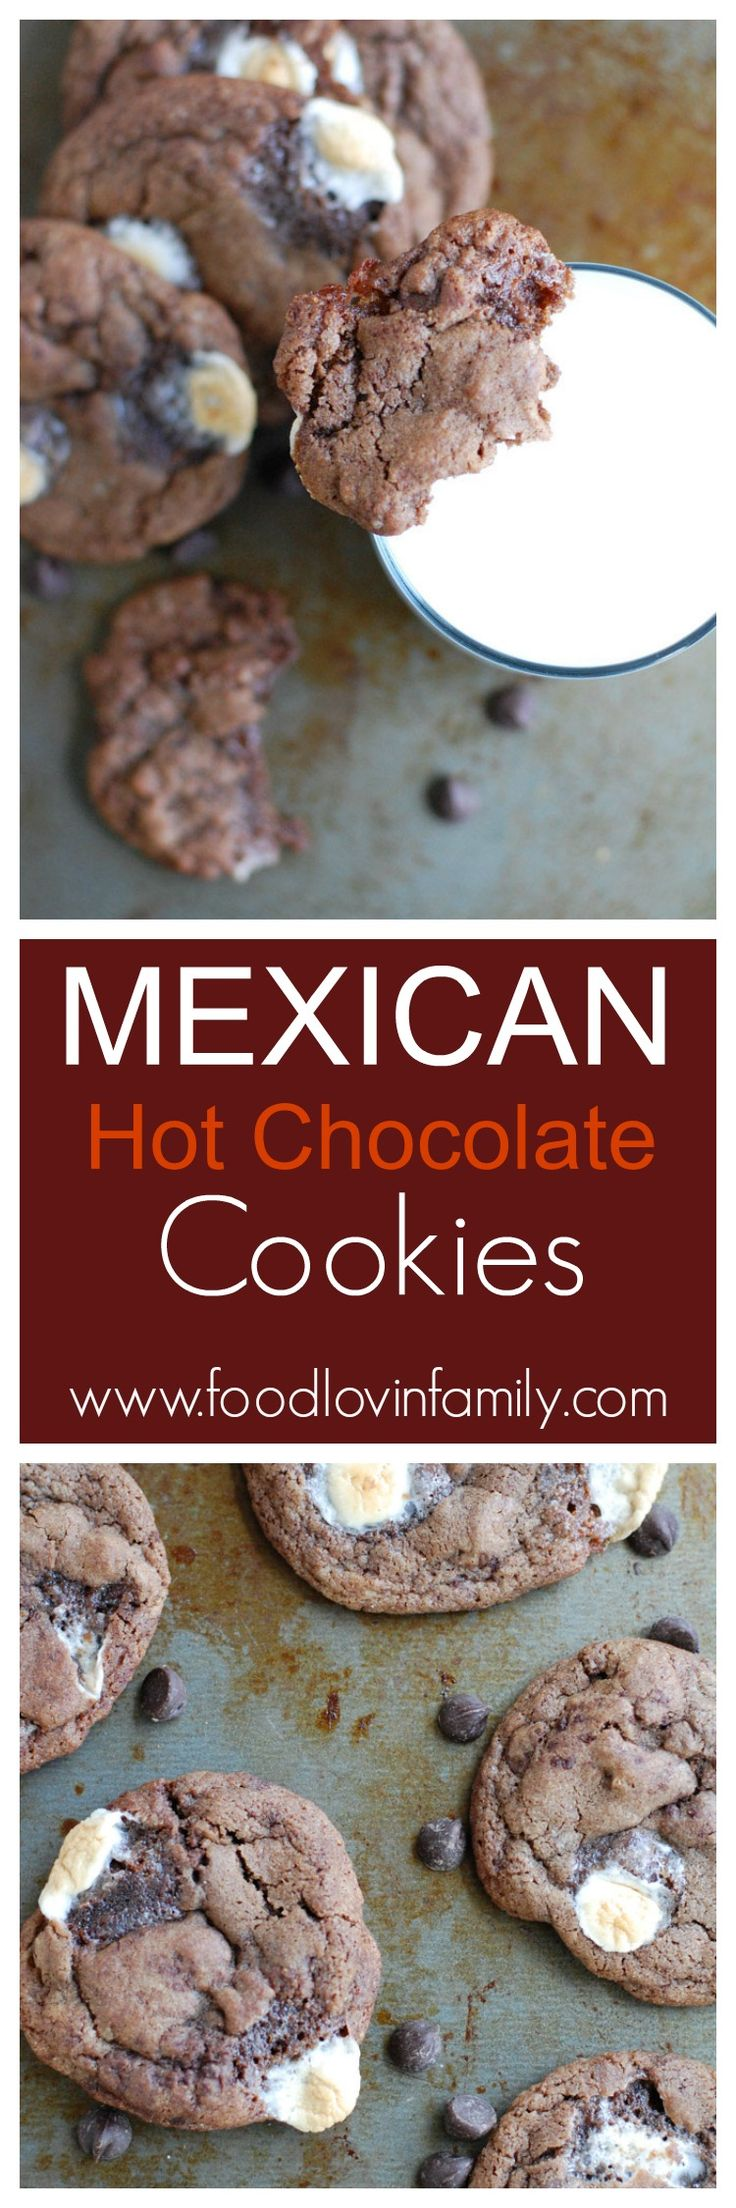 Mexican Hot Chocolate Cookies   http://www.foodlovinfamily.com/mexican-hot-chocolate-cookies/